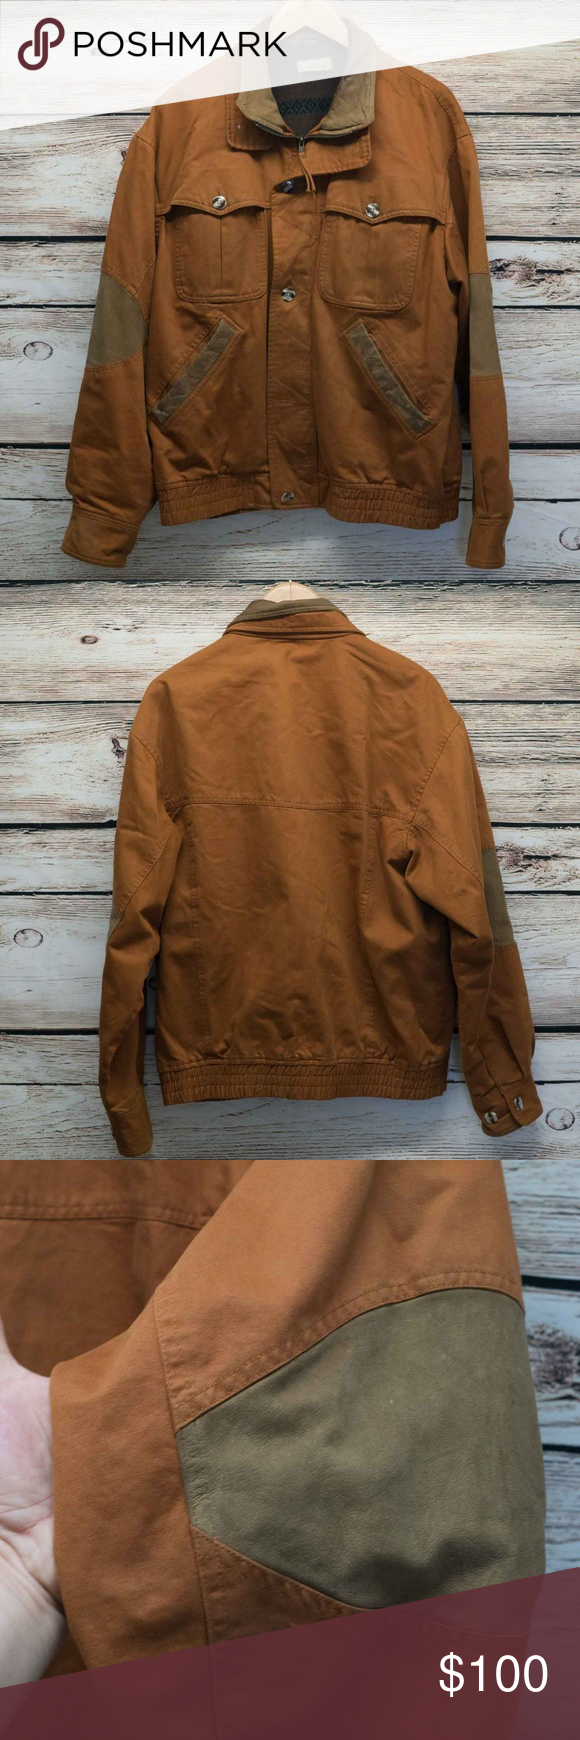 The Territory Ahead Canvas Bomber Jacket Leather Trim Elbow Patches Great Jacket Missing A Button Toward Bottom As Shown In Ph Bomber Jacket Jackets Fashion [ 1740 x 580 Pixel ]